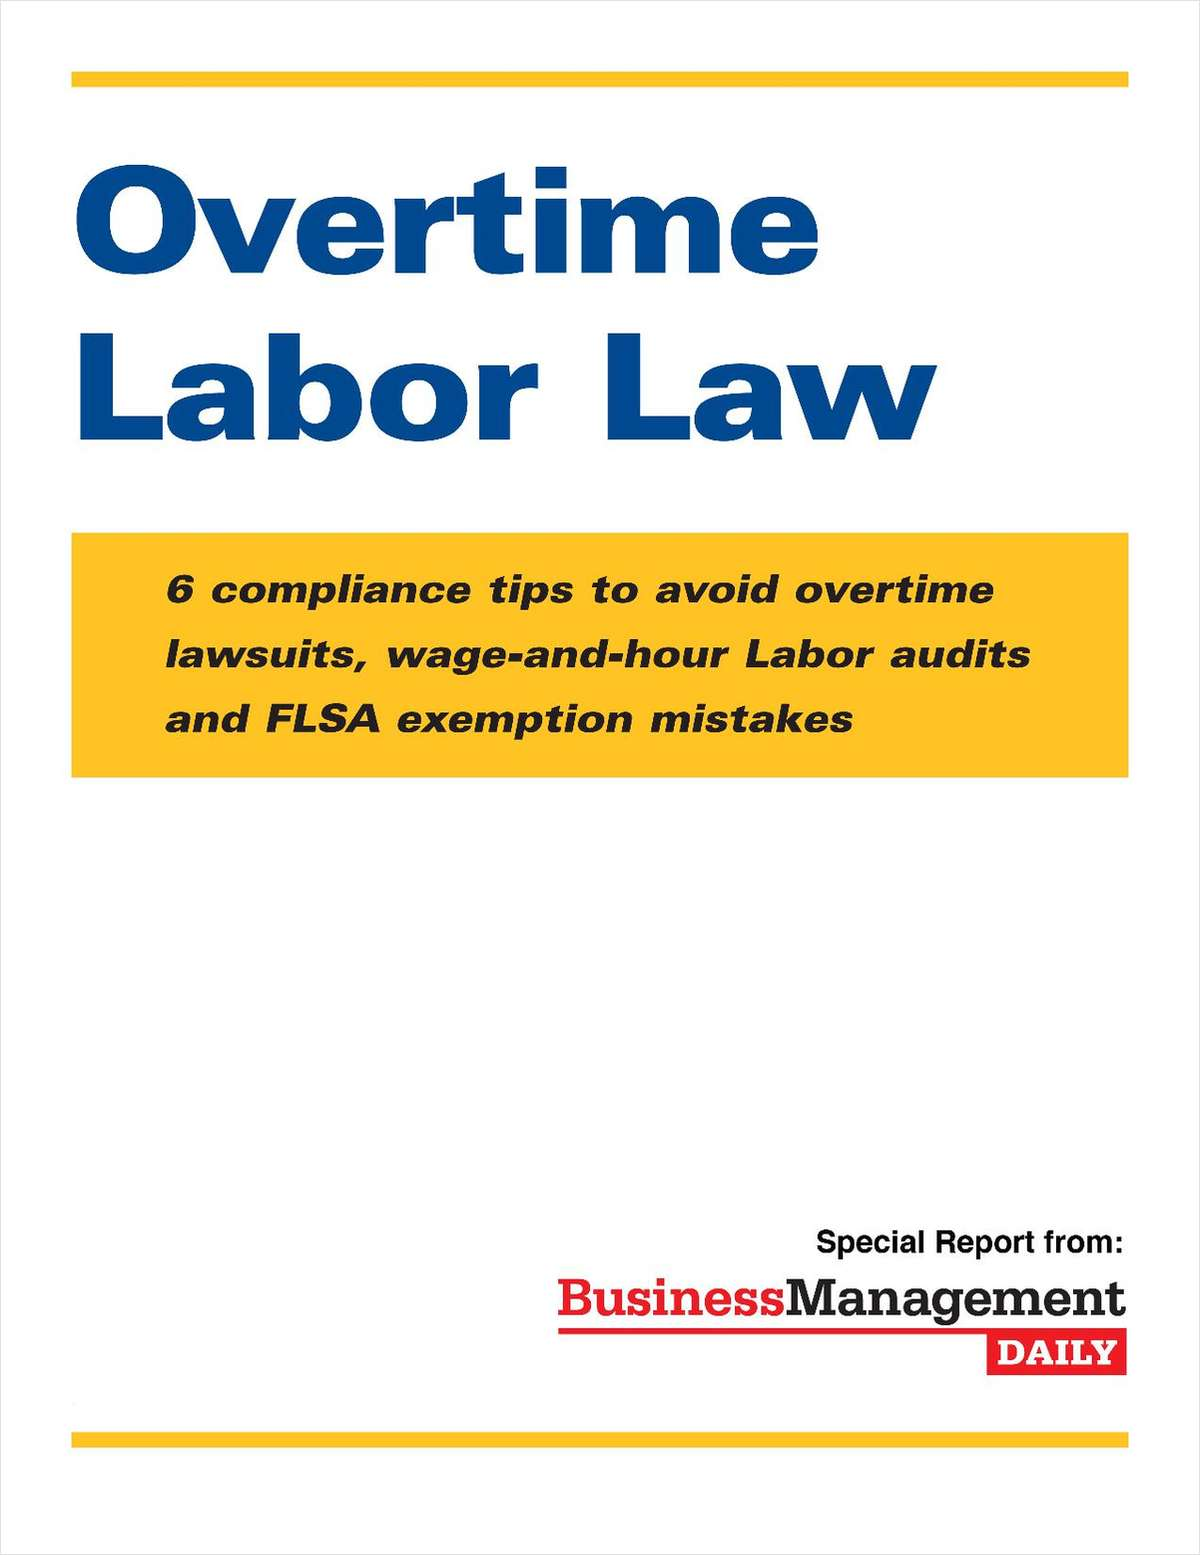 How To Follow The Overtime Labor Law